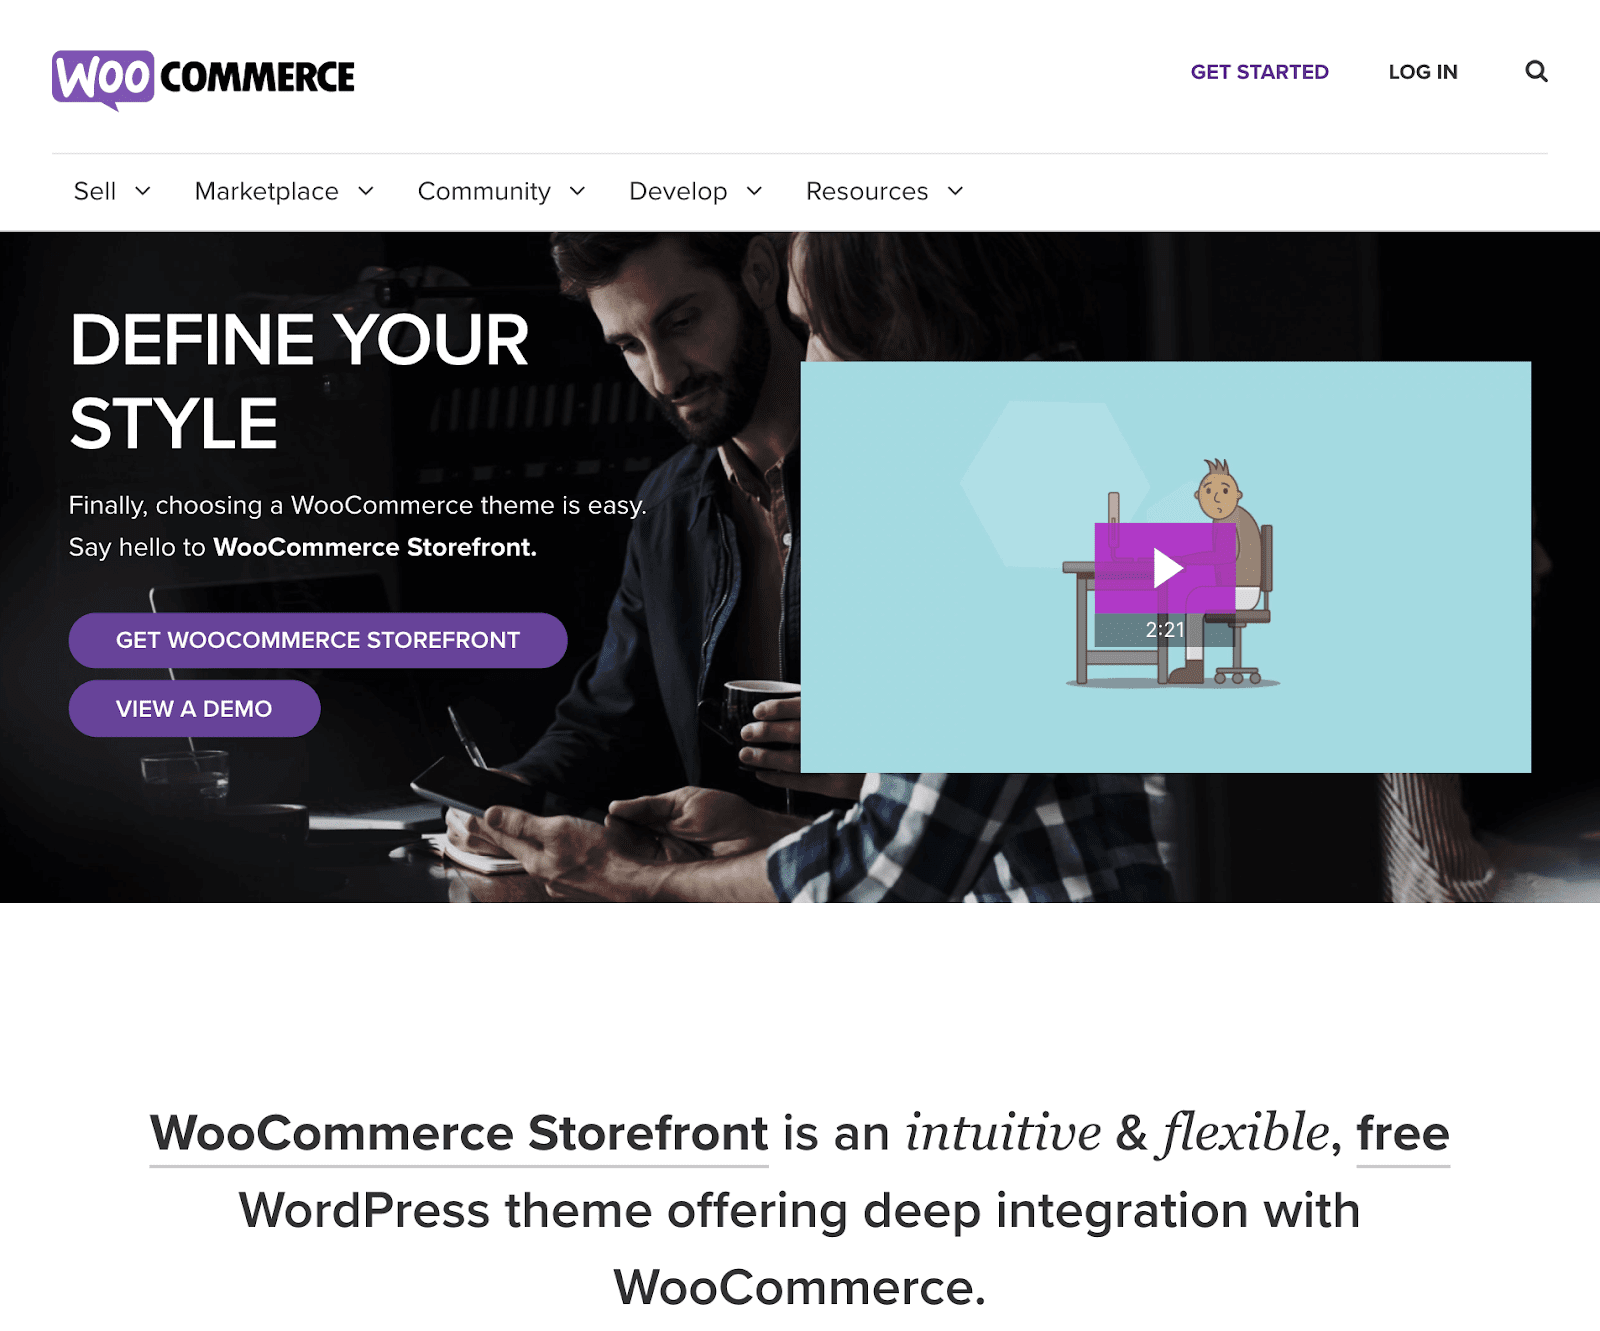 The WooCommerce storefront theme.